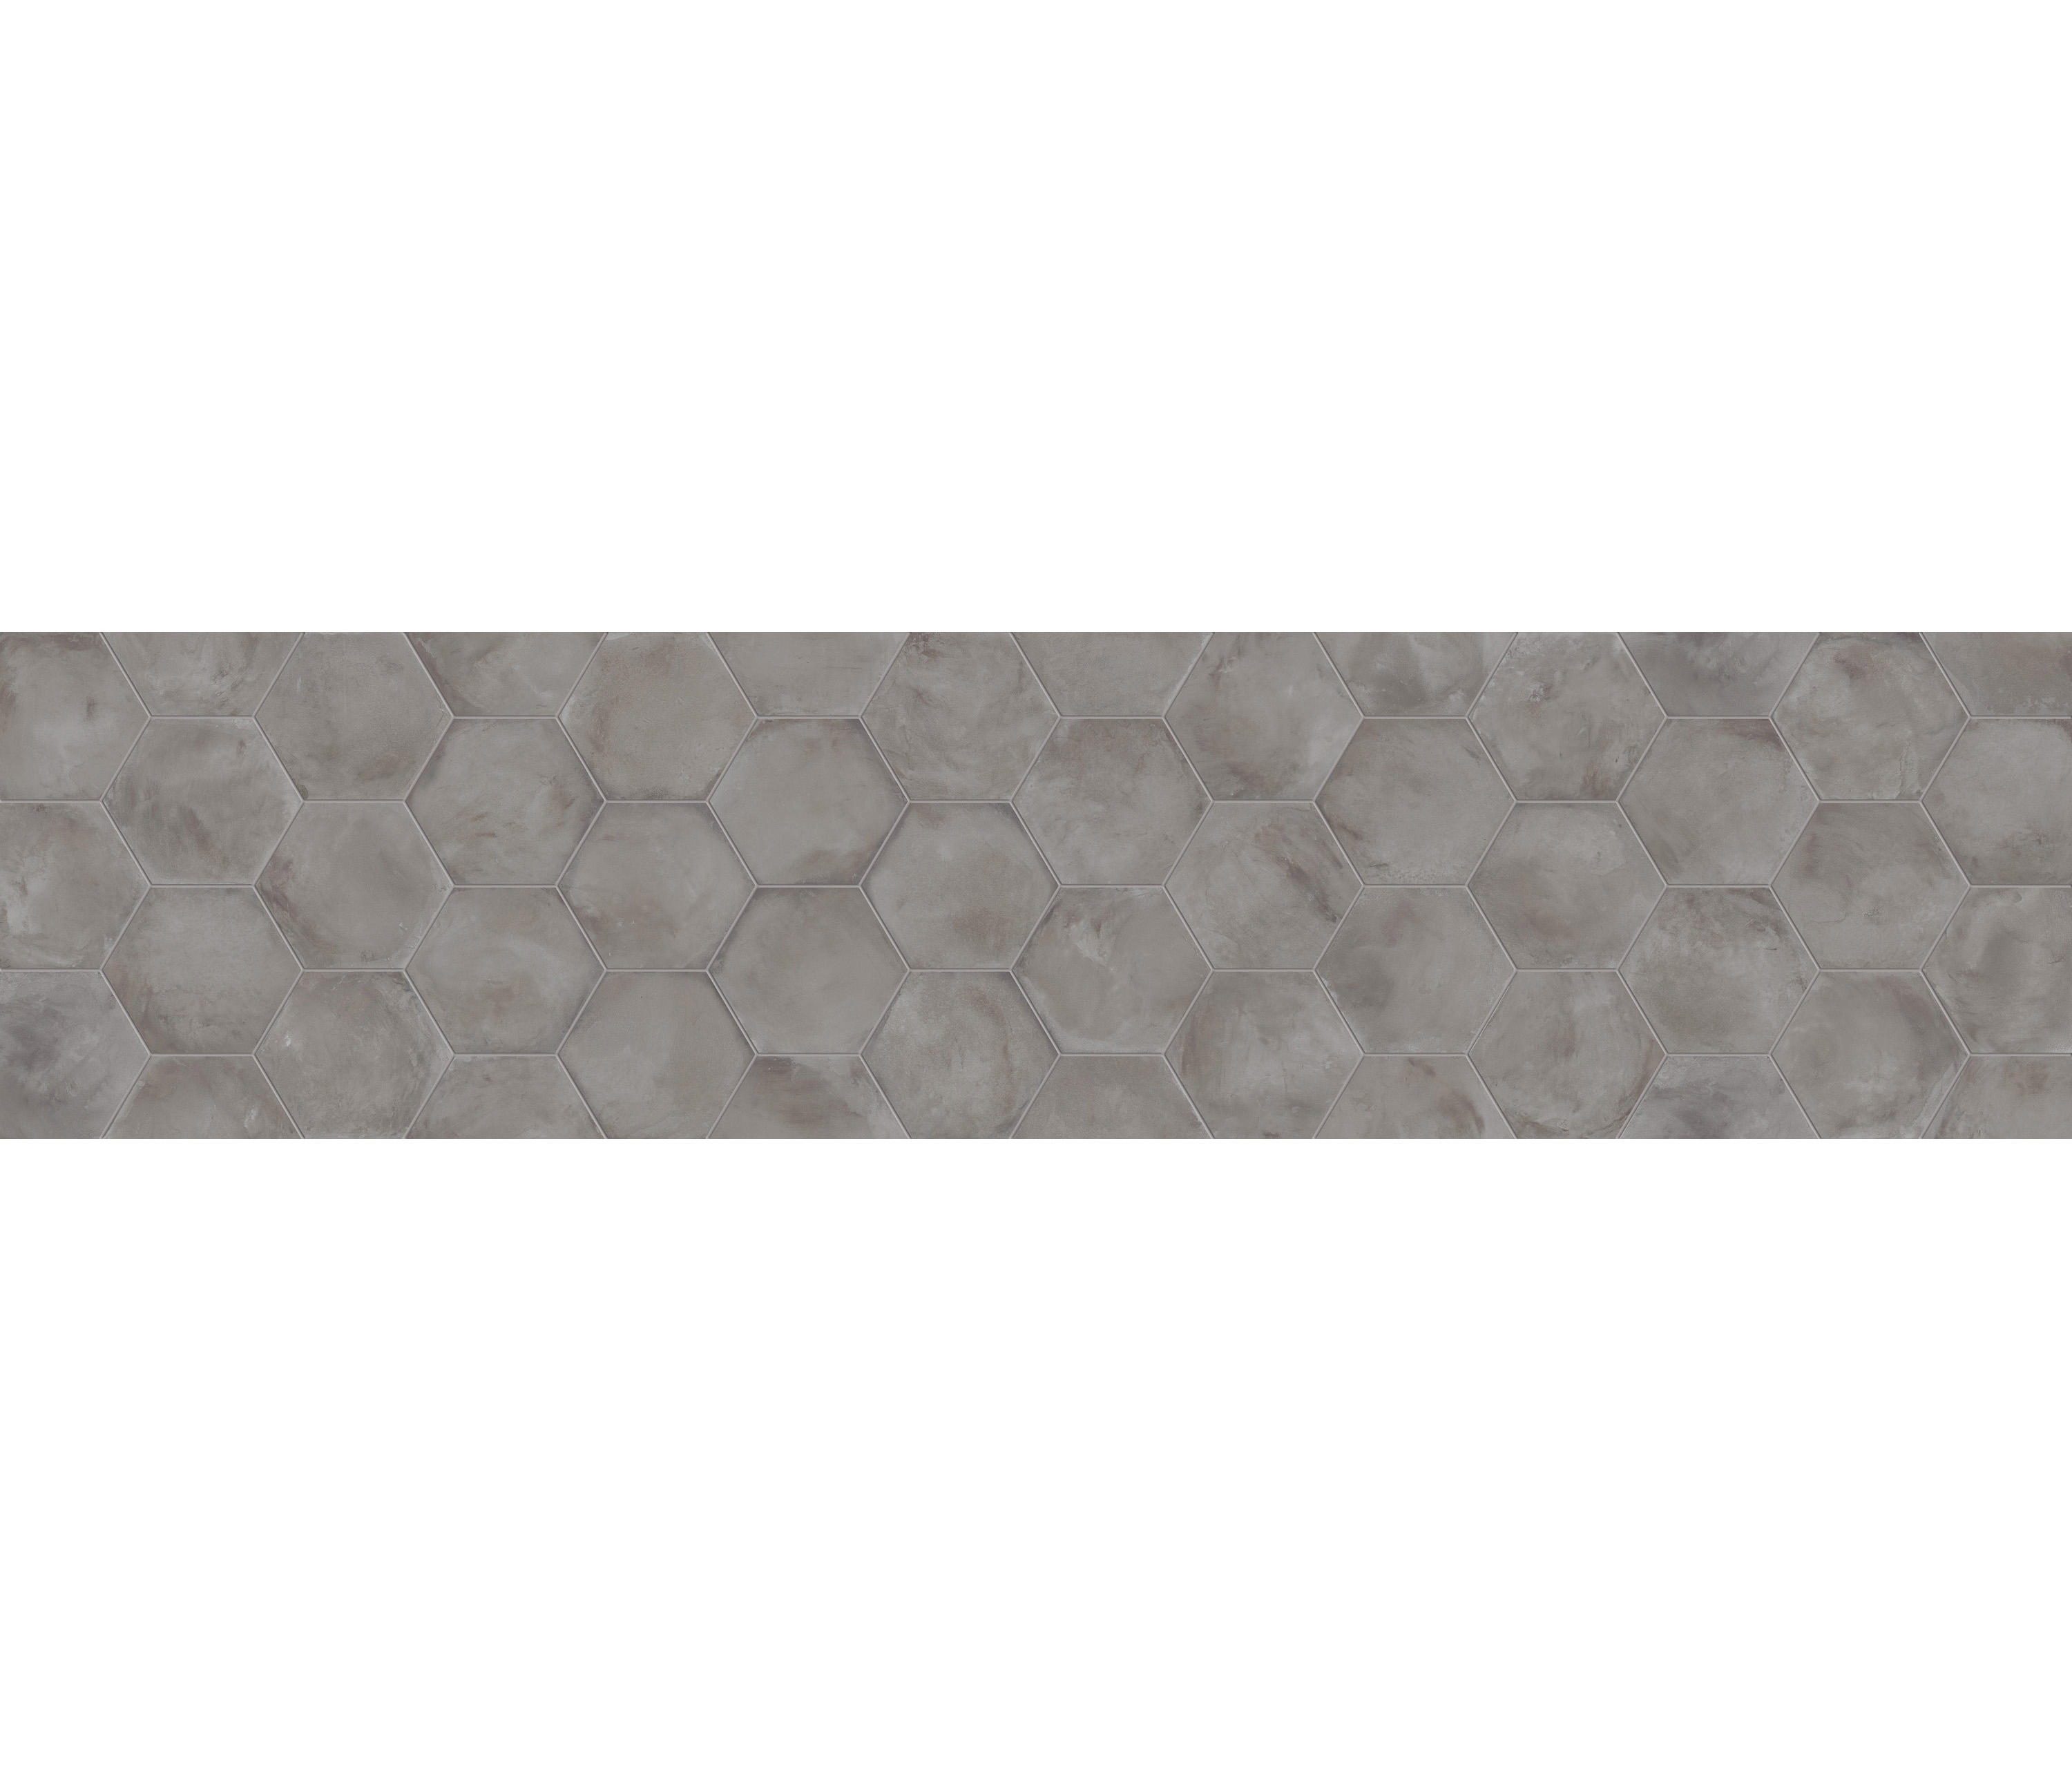 TERRA | ANTRACITE ESAGONA - Ceramic tiles from Marca Corona | Architonic